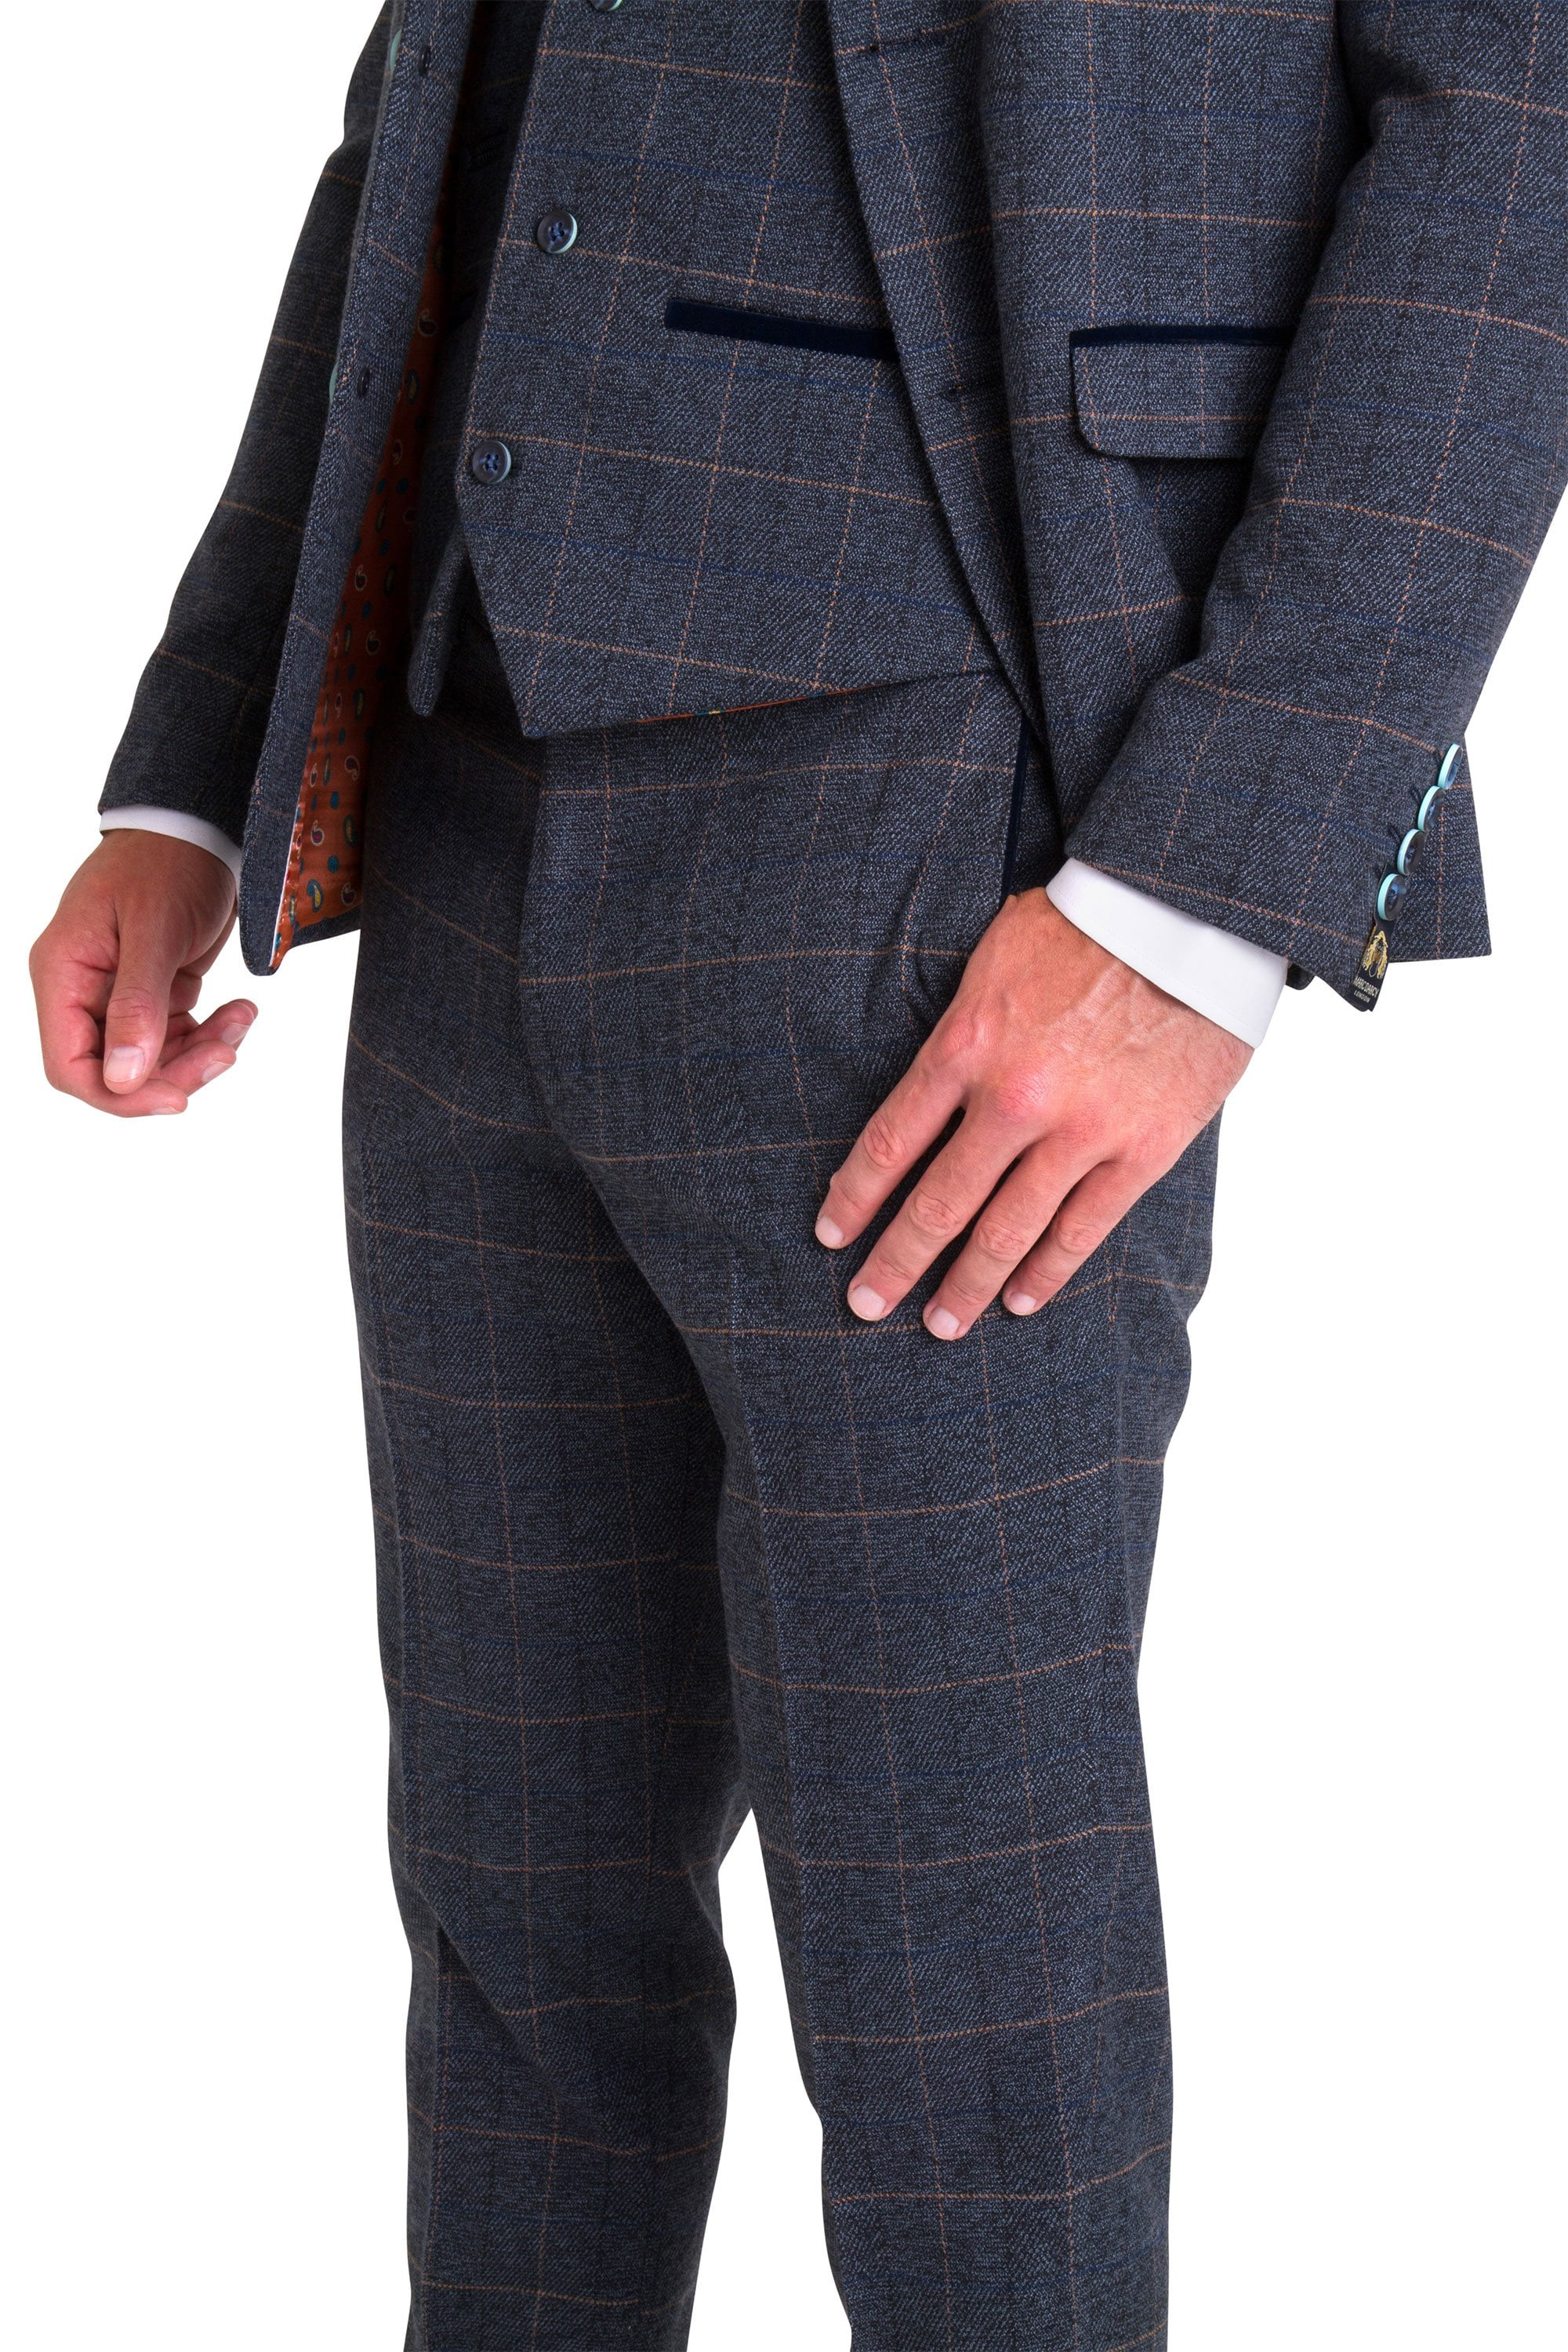 Marc Darcy Scott Blue Tweed Three Piece Suit Suits From Jenson